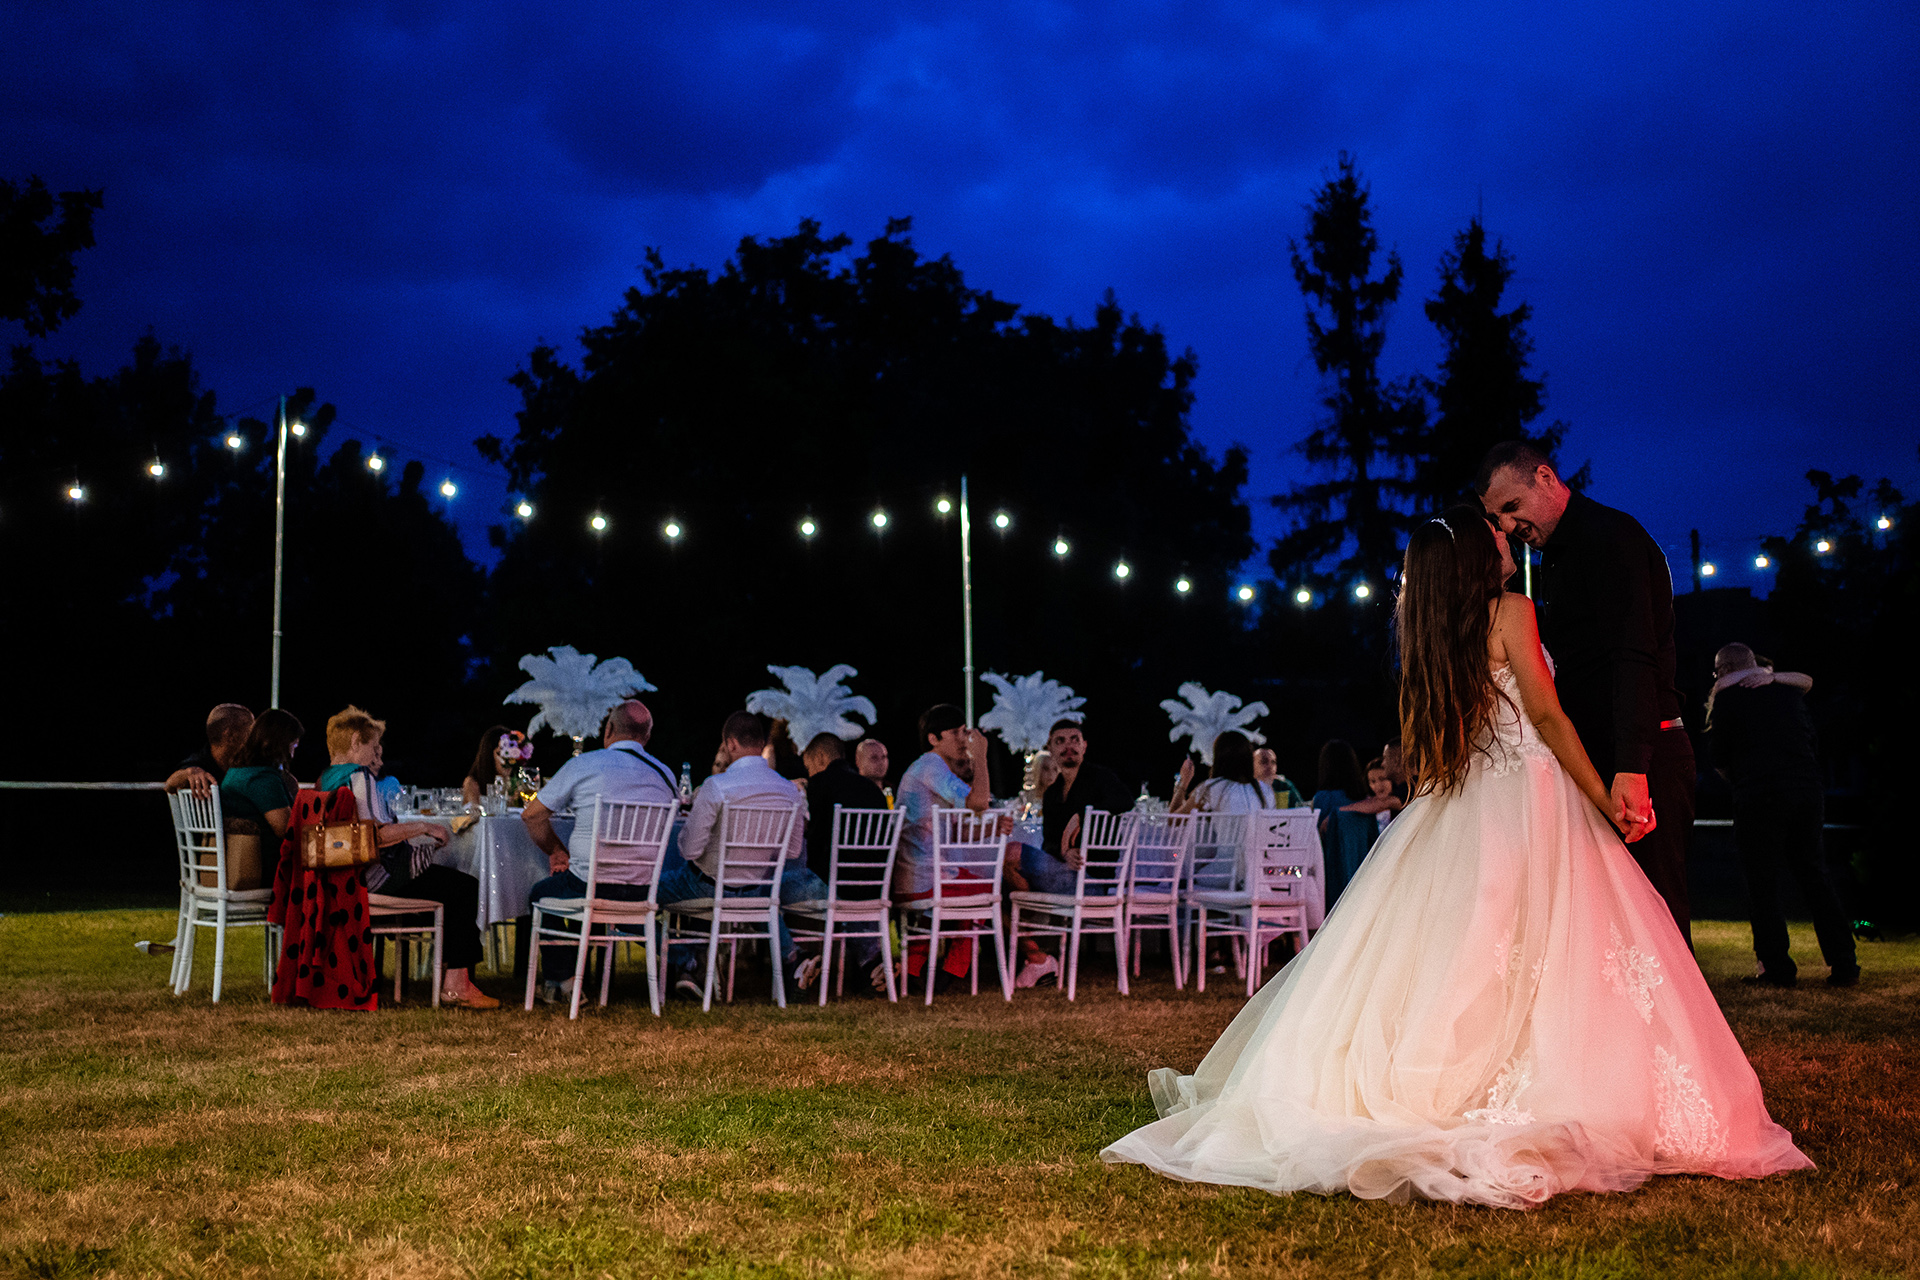 Bulgaria Elopement Venue Images |  The first dance of the couple under the blue sky outdoors